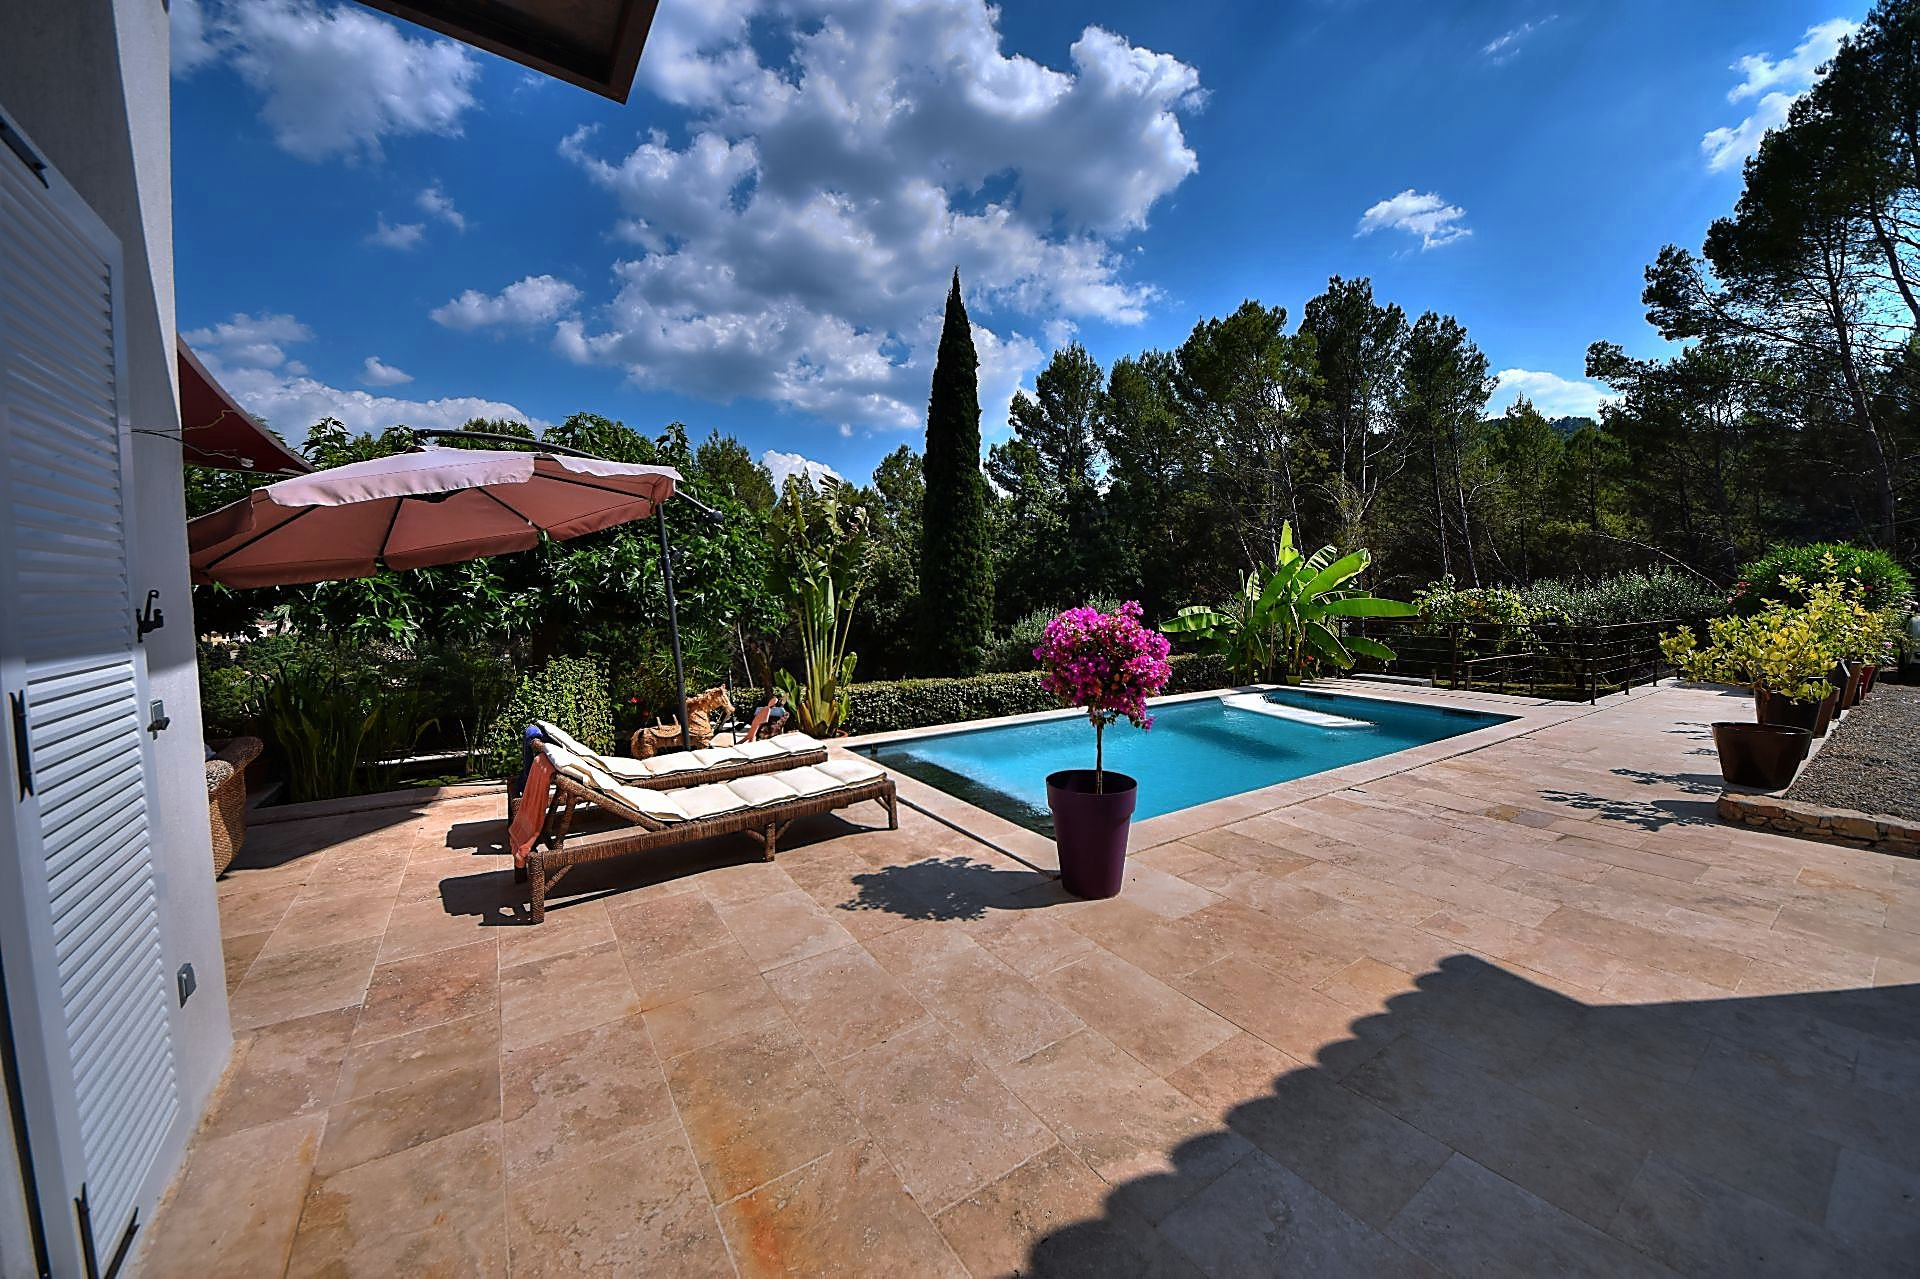 Superb house with guest house - nice view - 2 pools - Var Provence